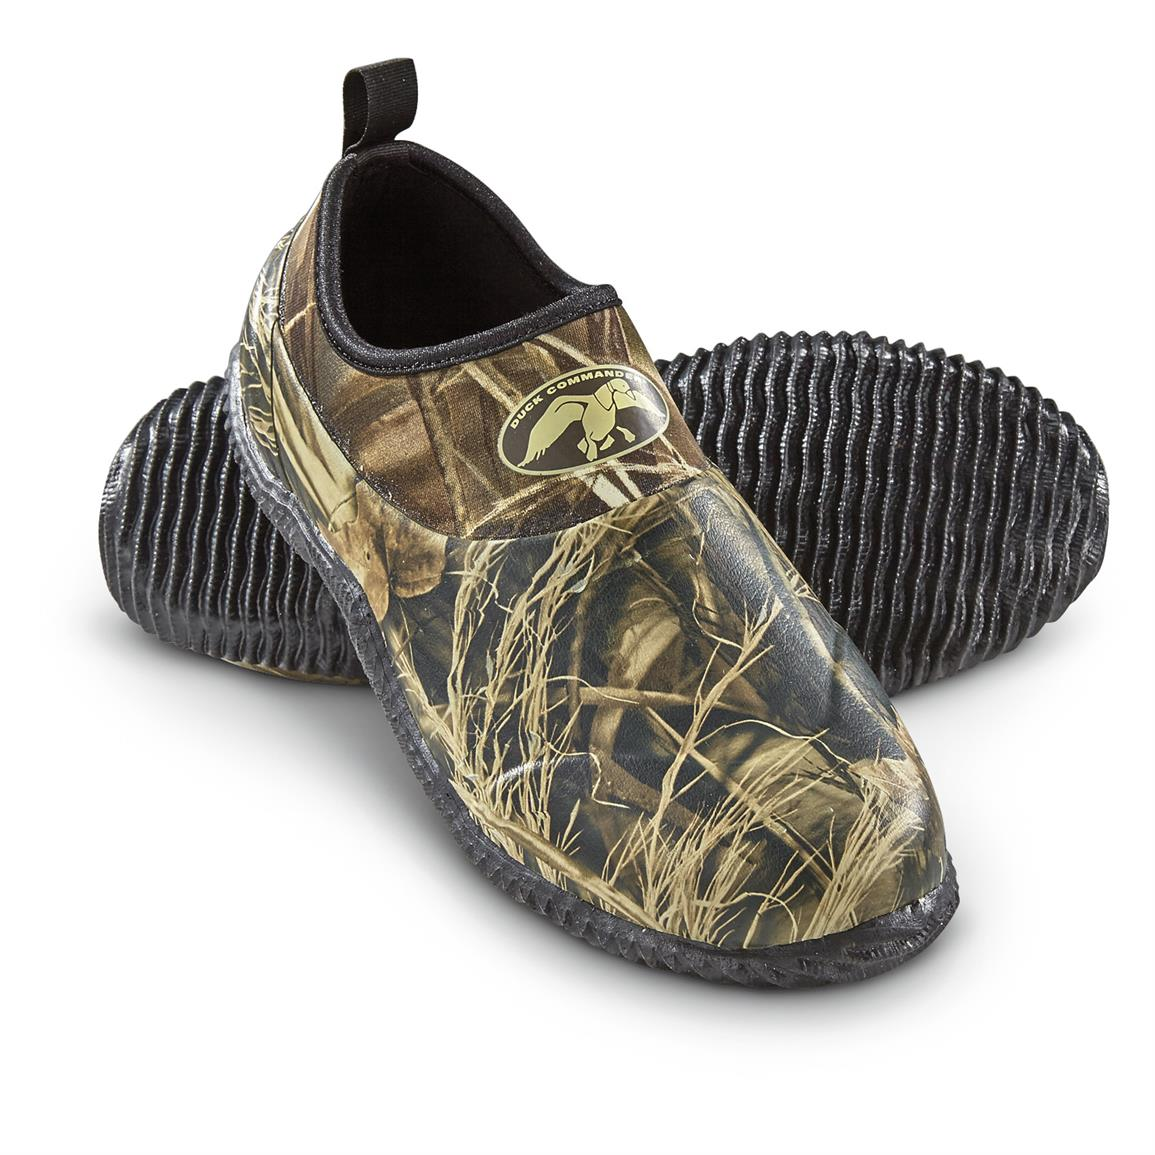 Rubber Mand Duck Commander Men S Mon Roe Slip On Rubber Shoes Realtree Max 4